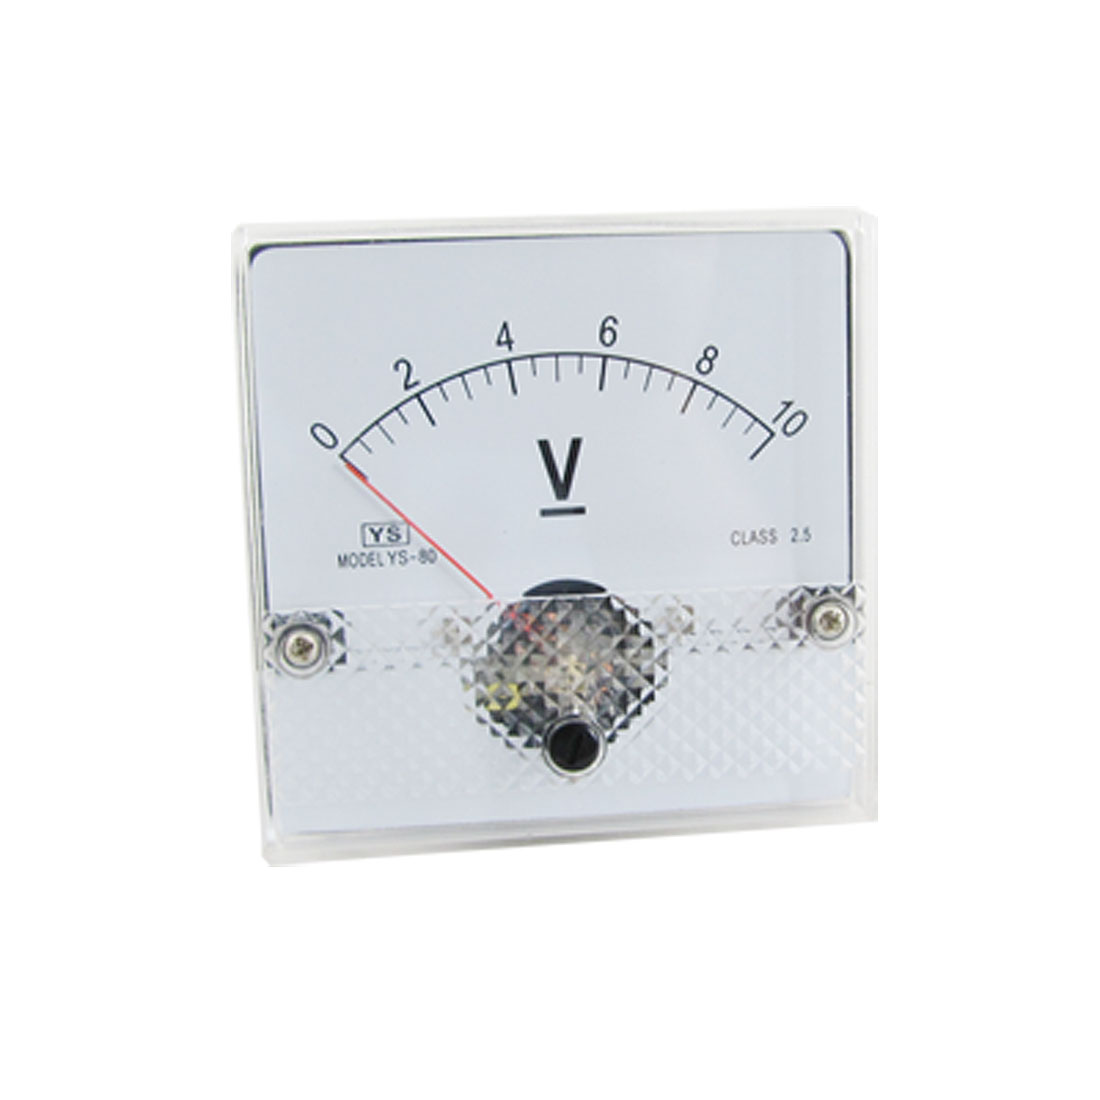 DC 10V Fine Adjustable Dial Voltage Meter + Installing Parts